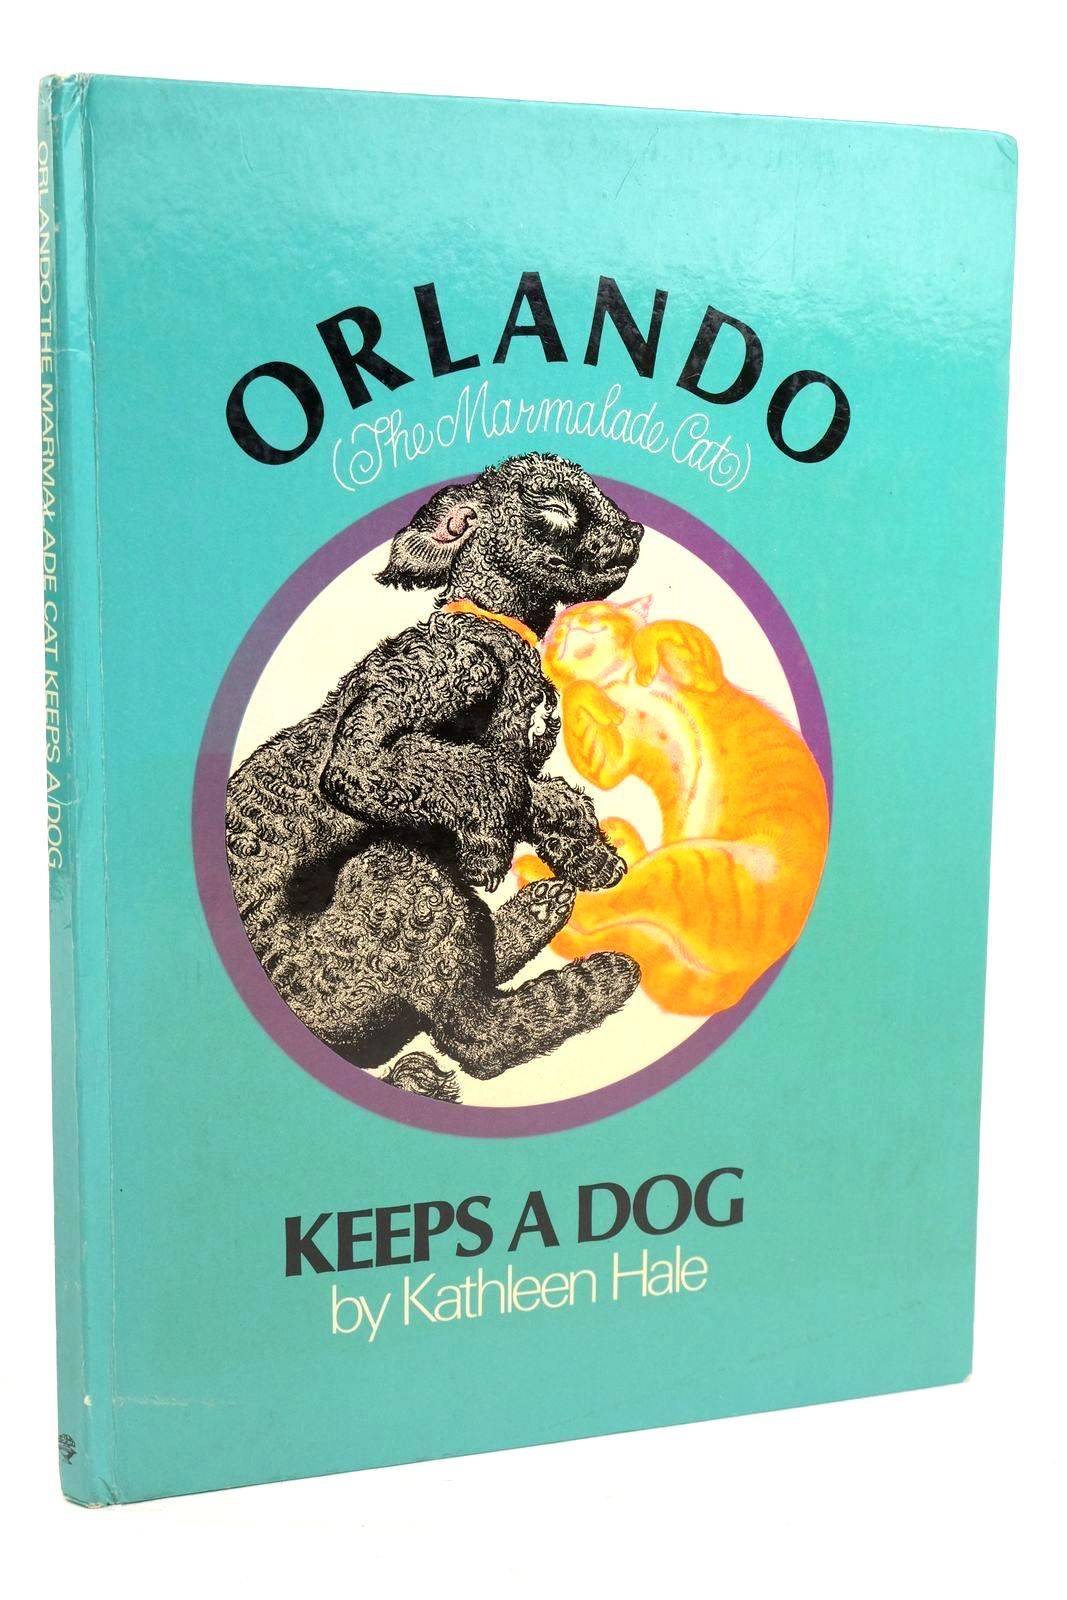 Photo of ORLANDO (THE MARMALADE CAT) KEEPS A DOG- Stock Number: 1319979